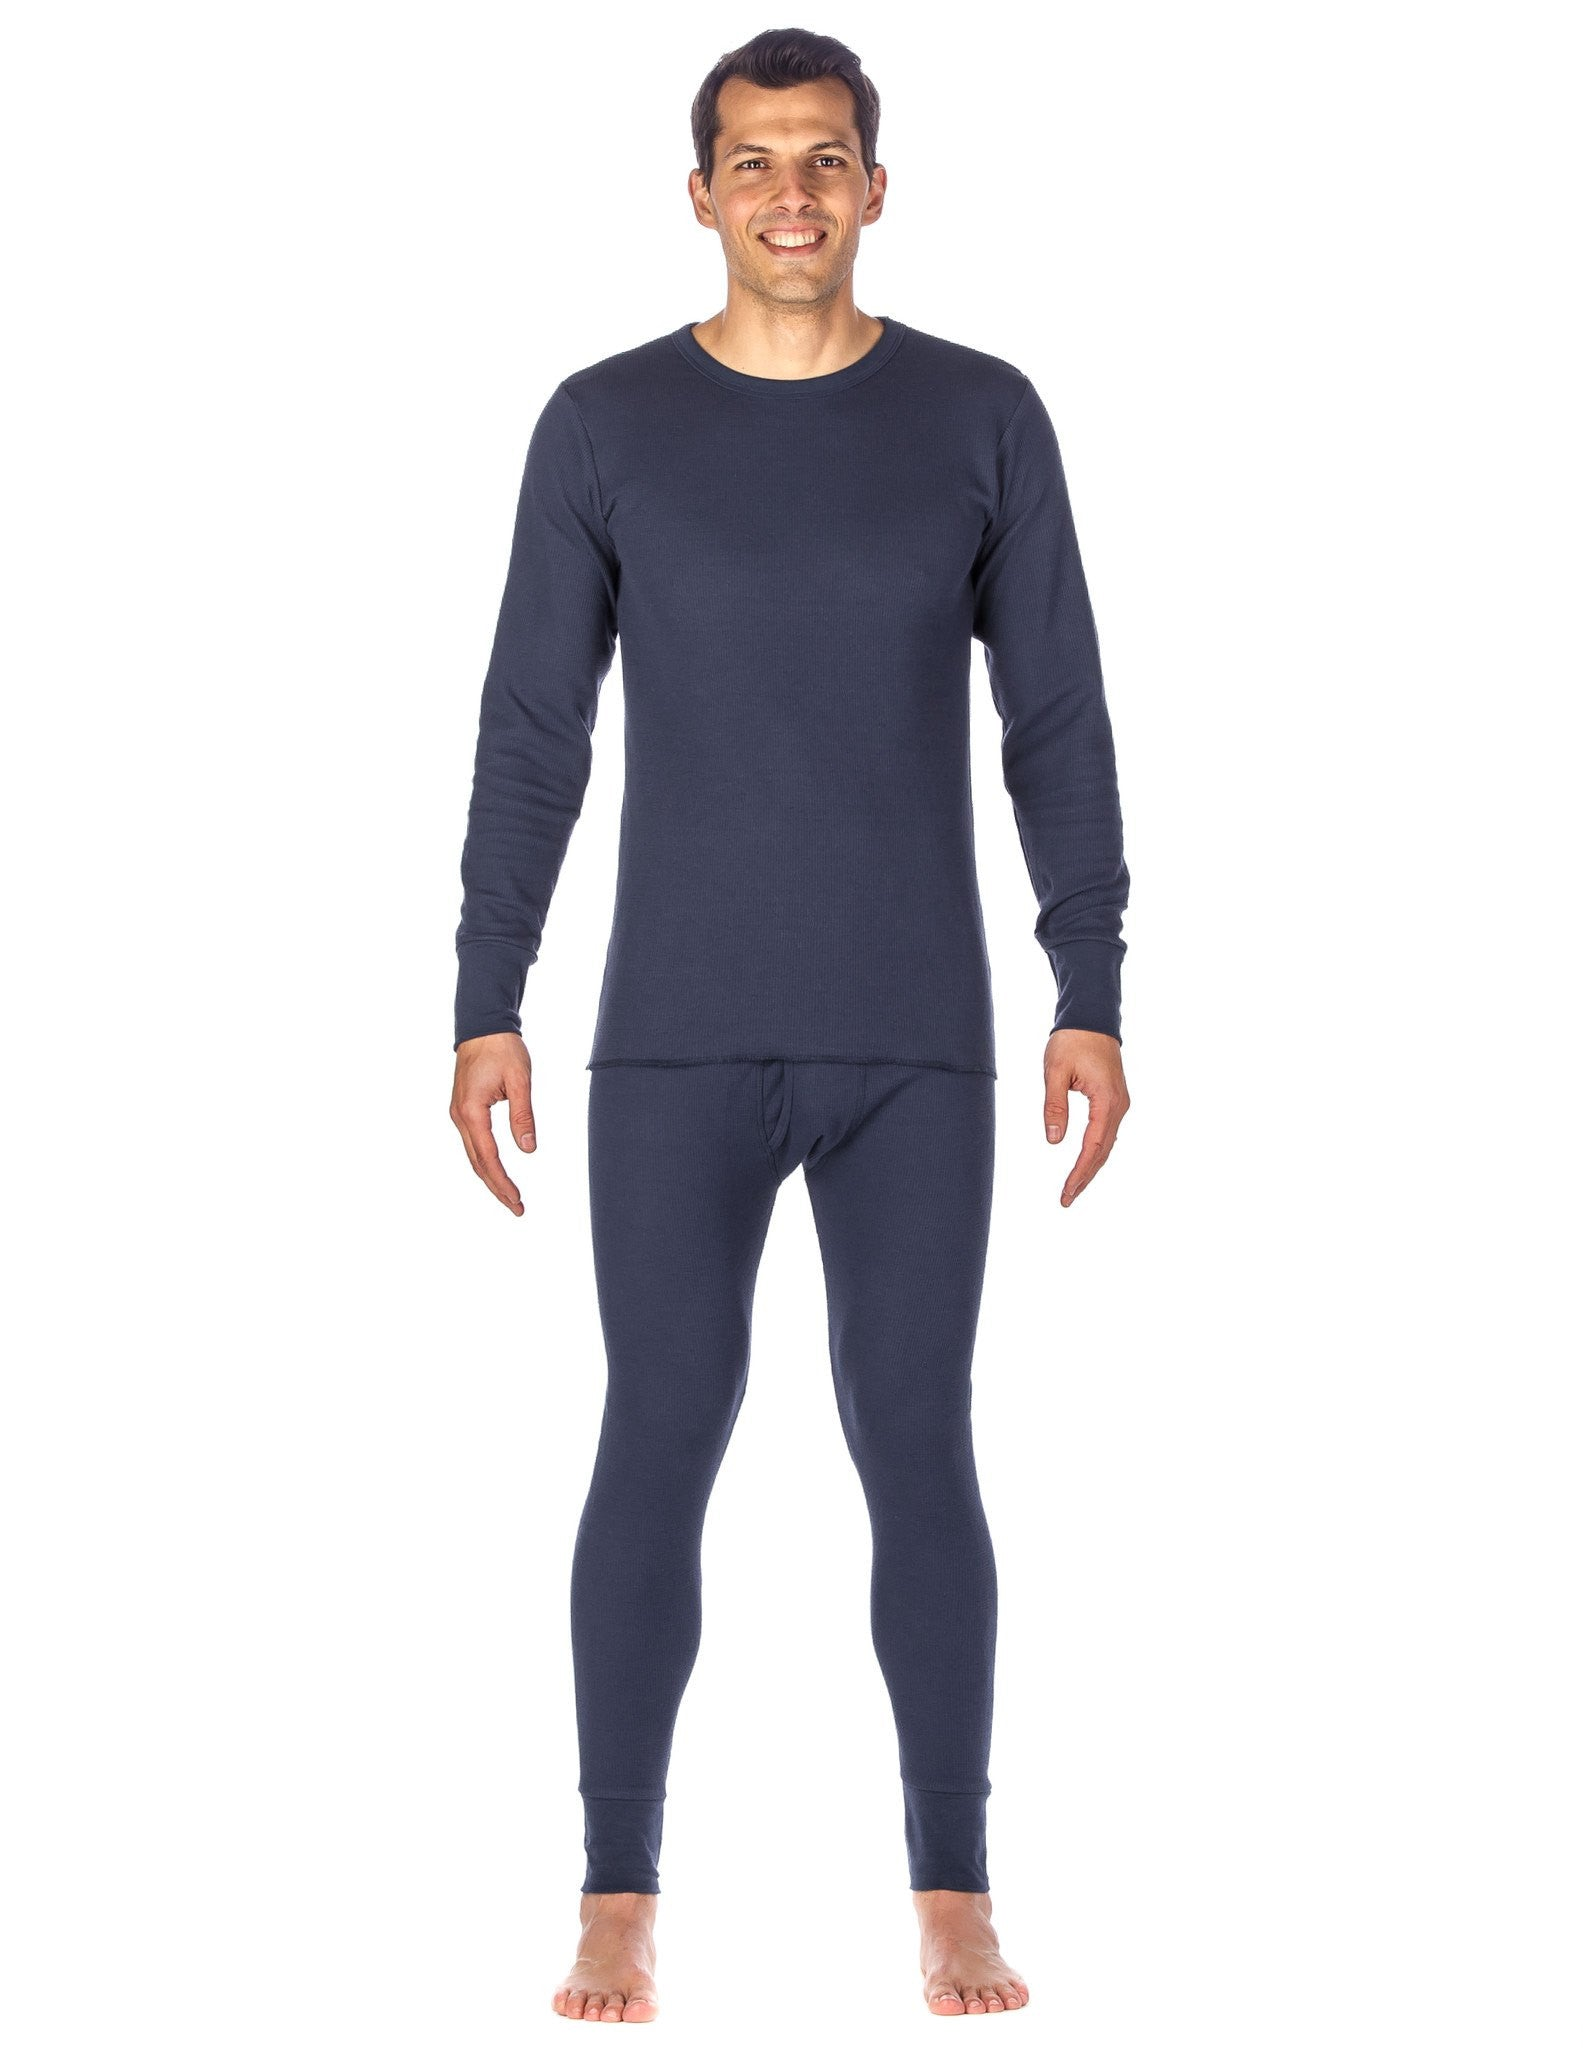 Men's Extreme Cold Waffle Knit Thermal Top and Bottom Set